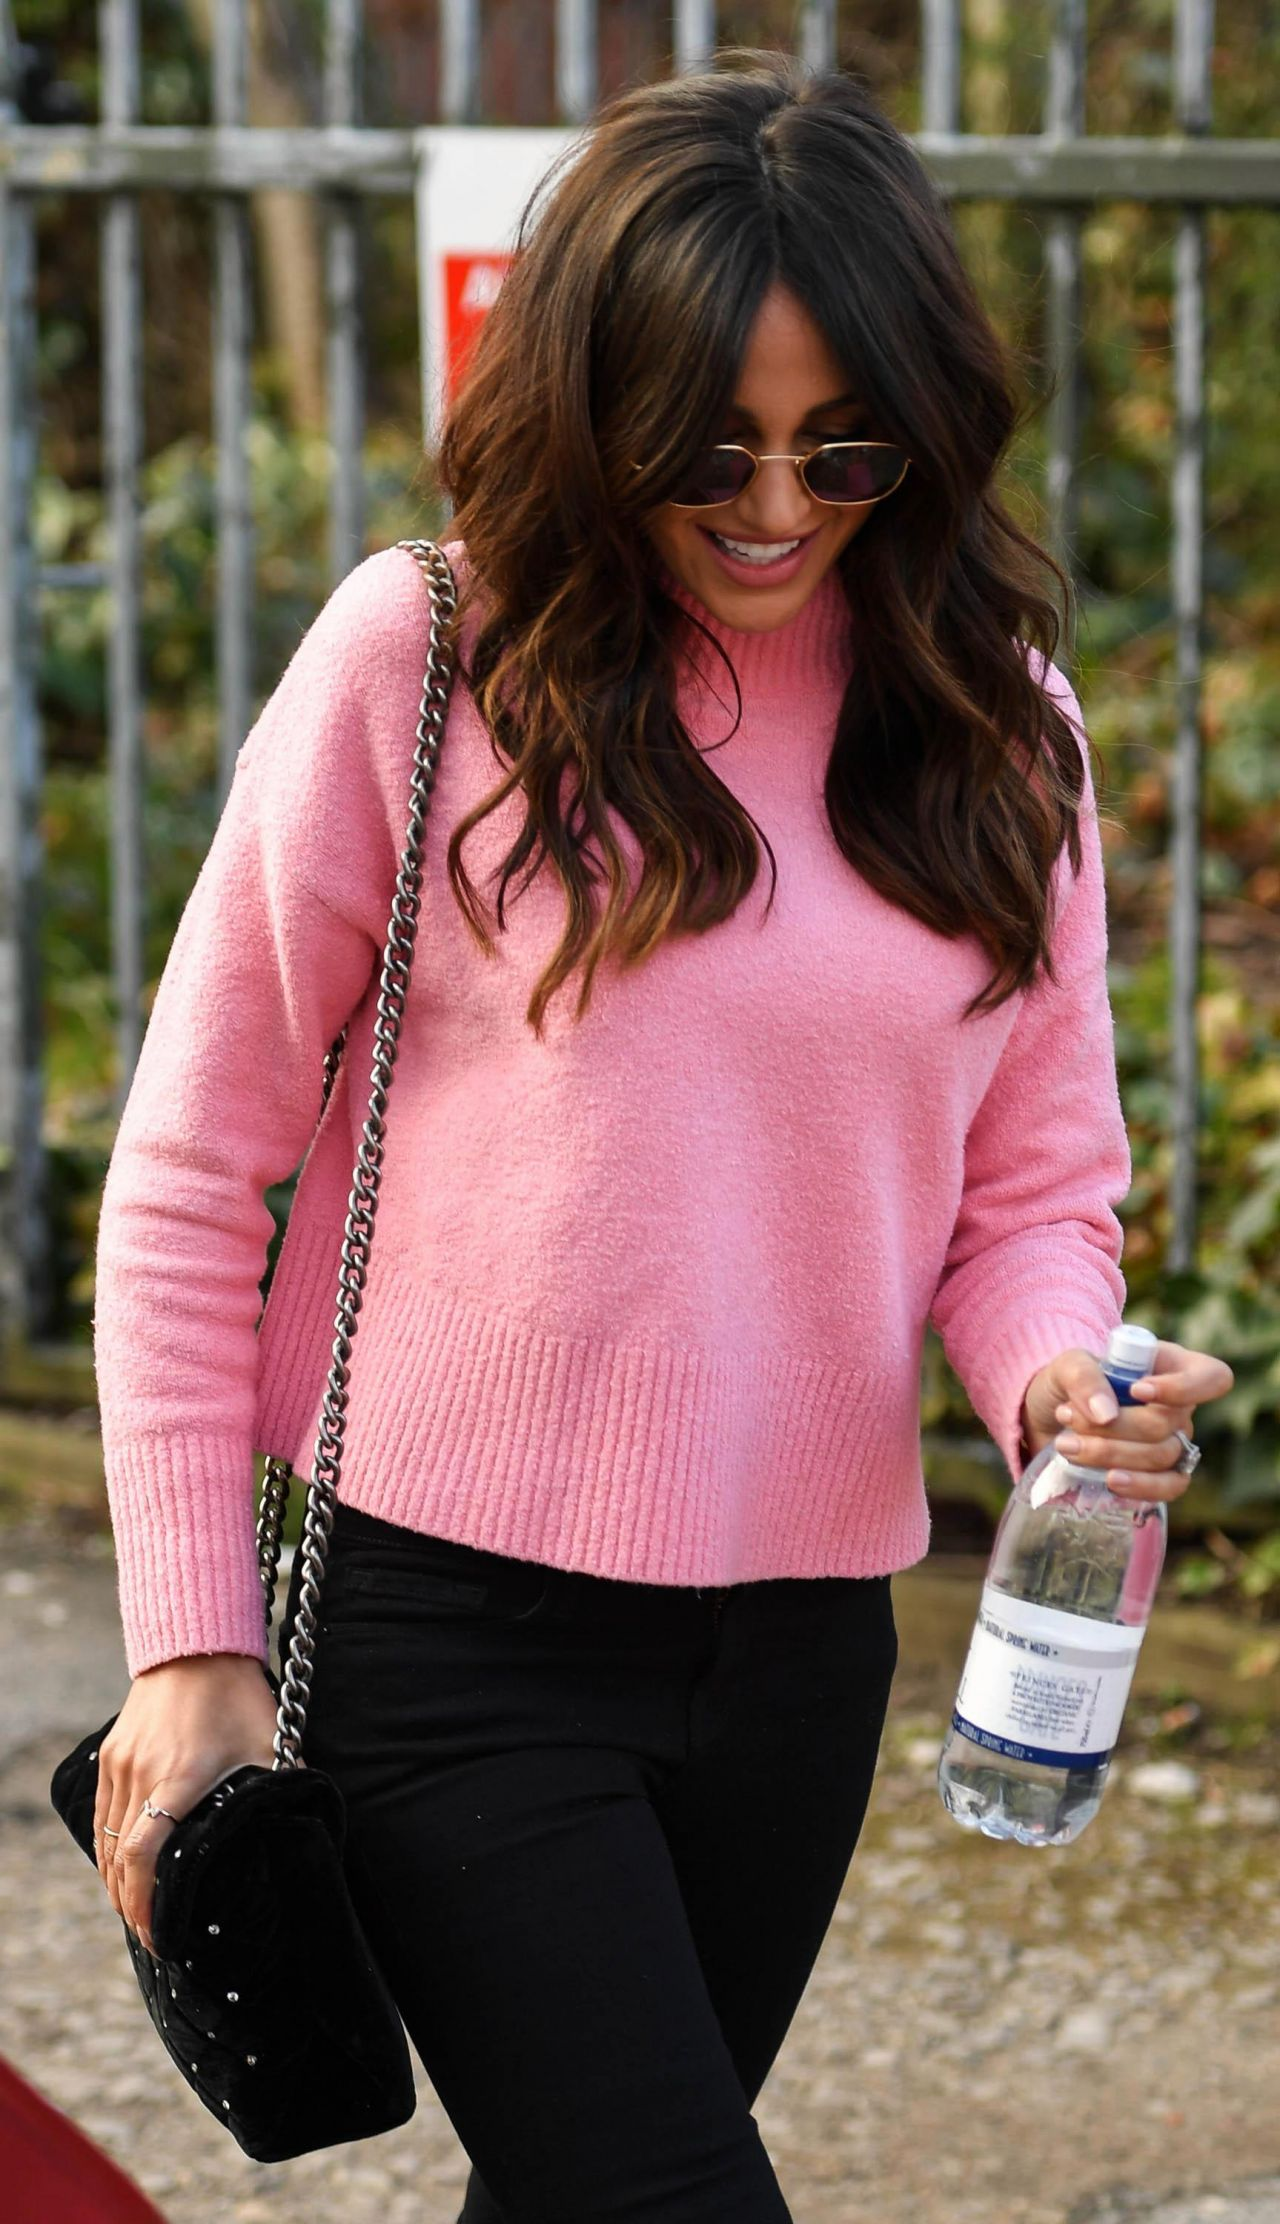 Michelle Keegan Filming Latest Project In Manchester 02